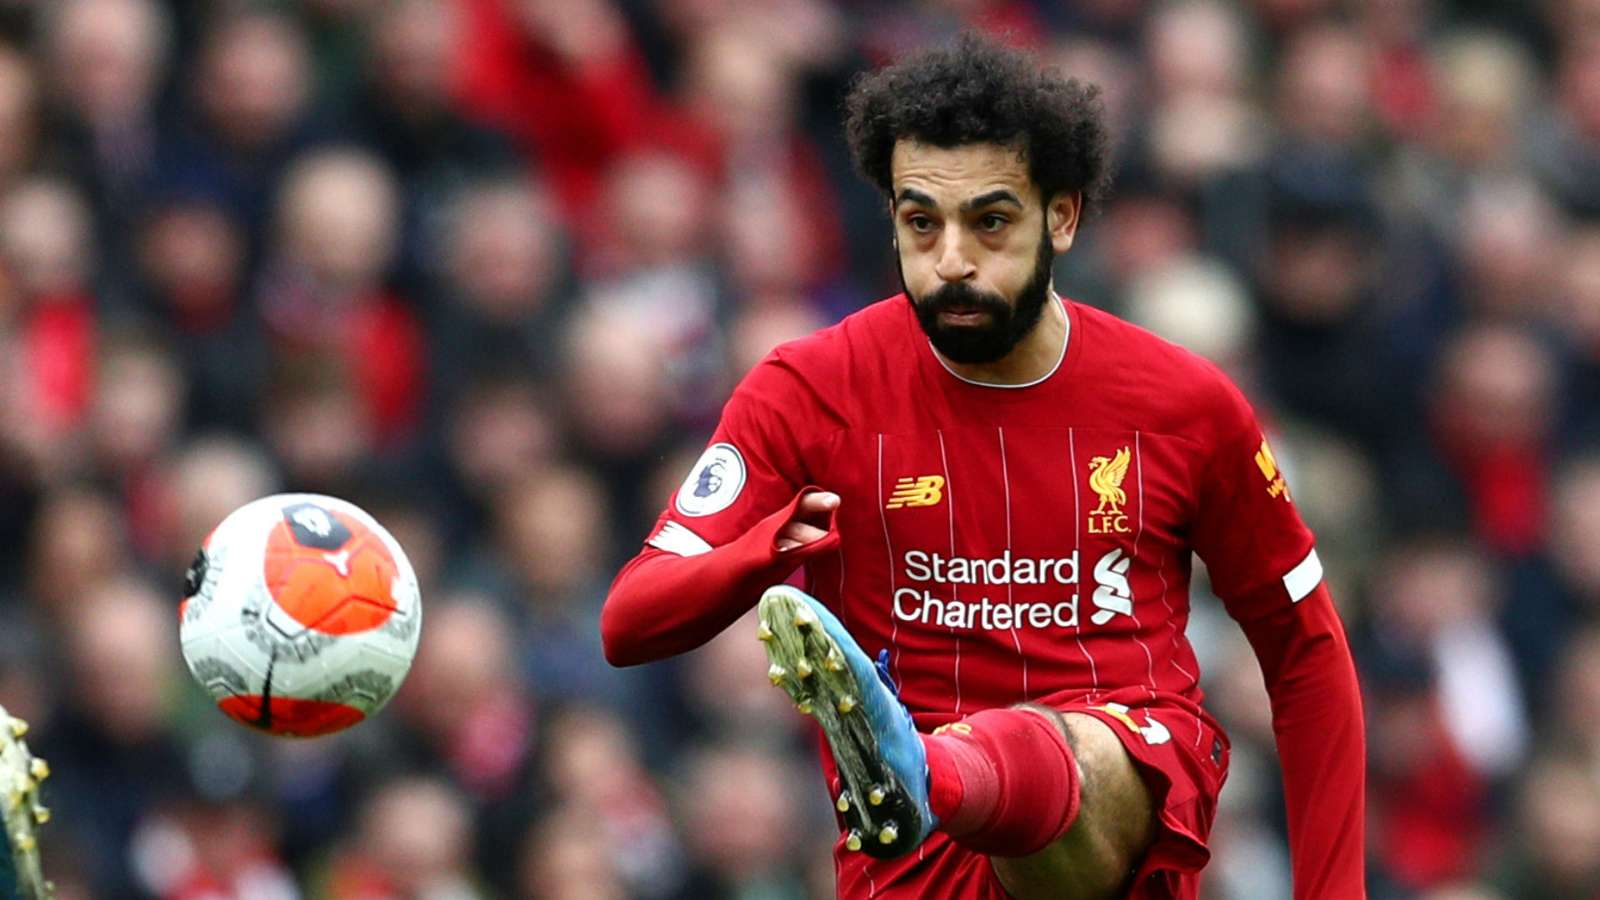 Mohamed Salah 'concerned' Liverpool will sell him this summer amid Real Madrid interest